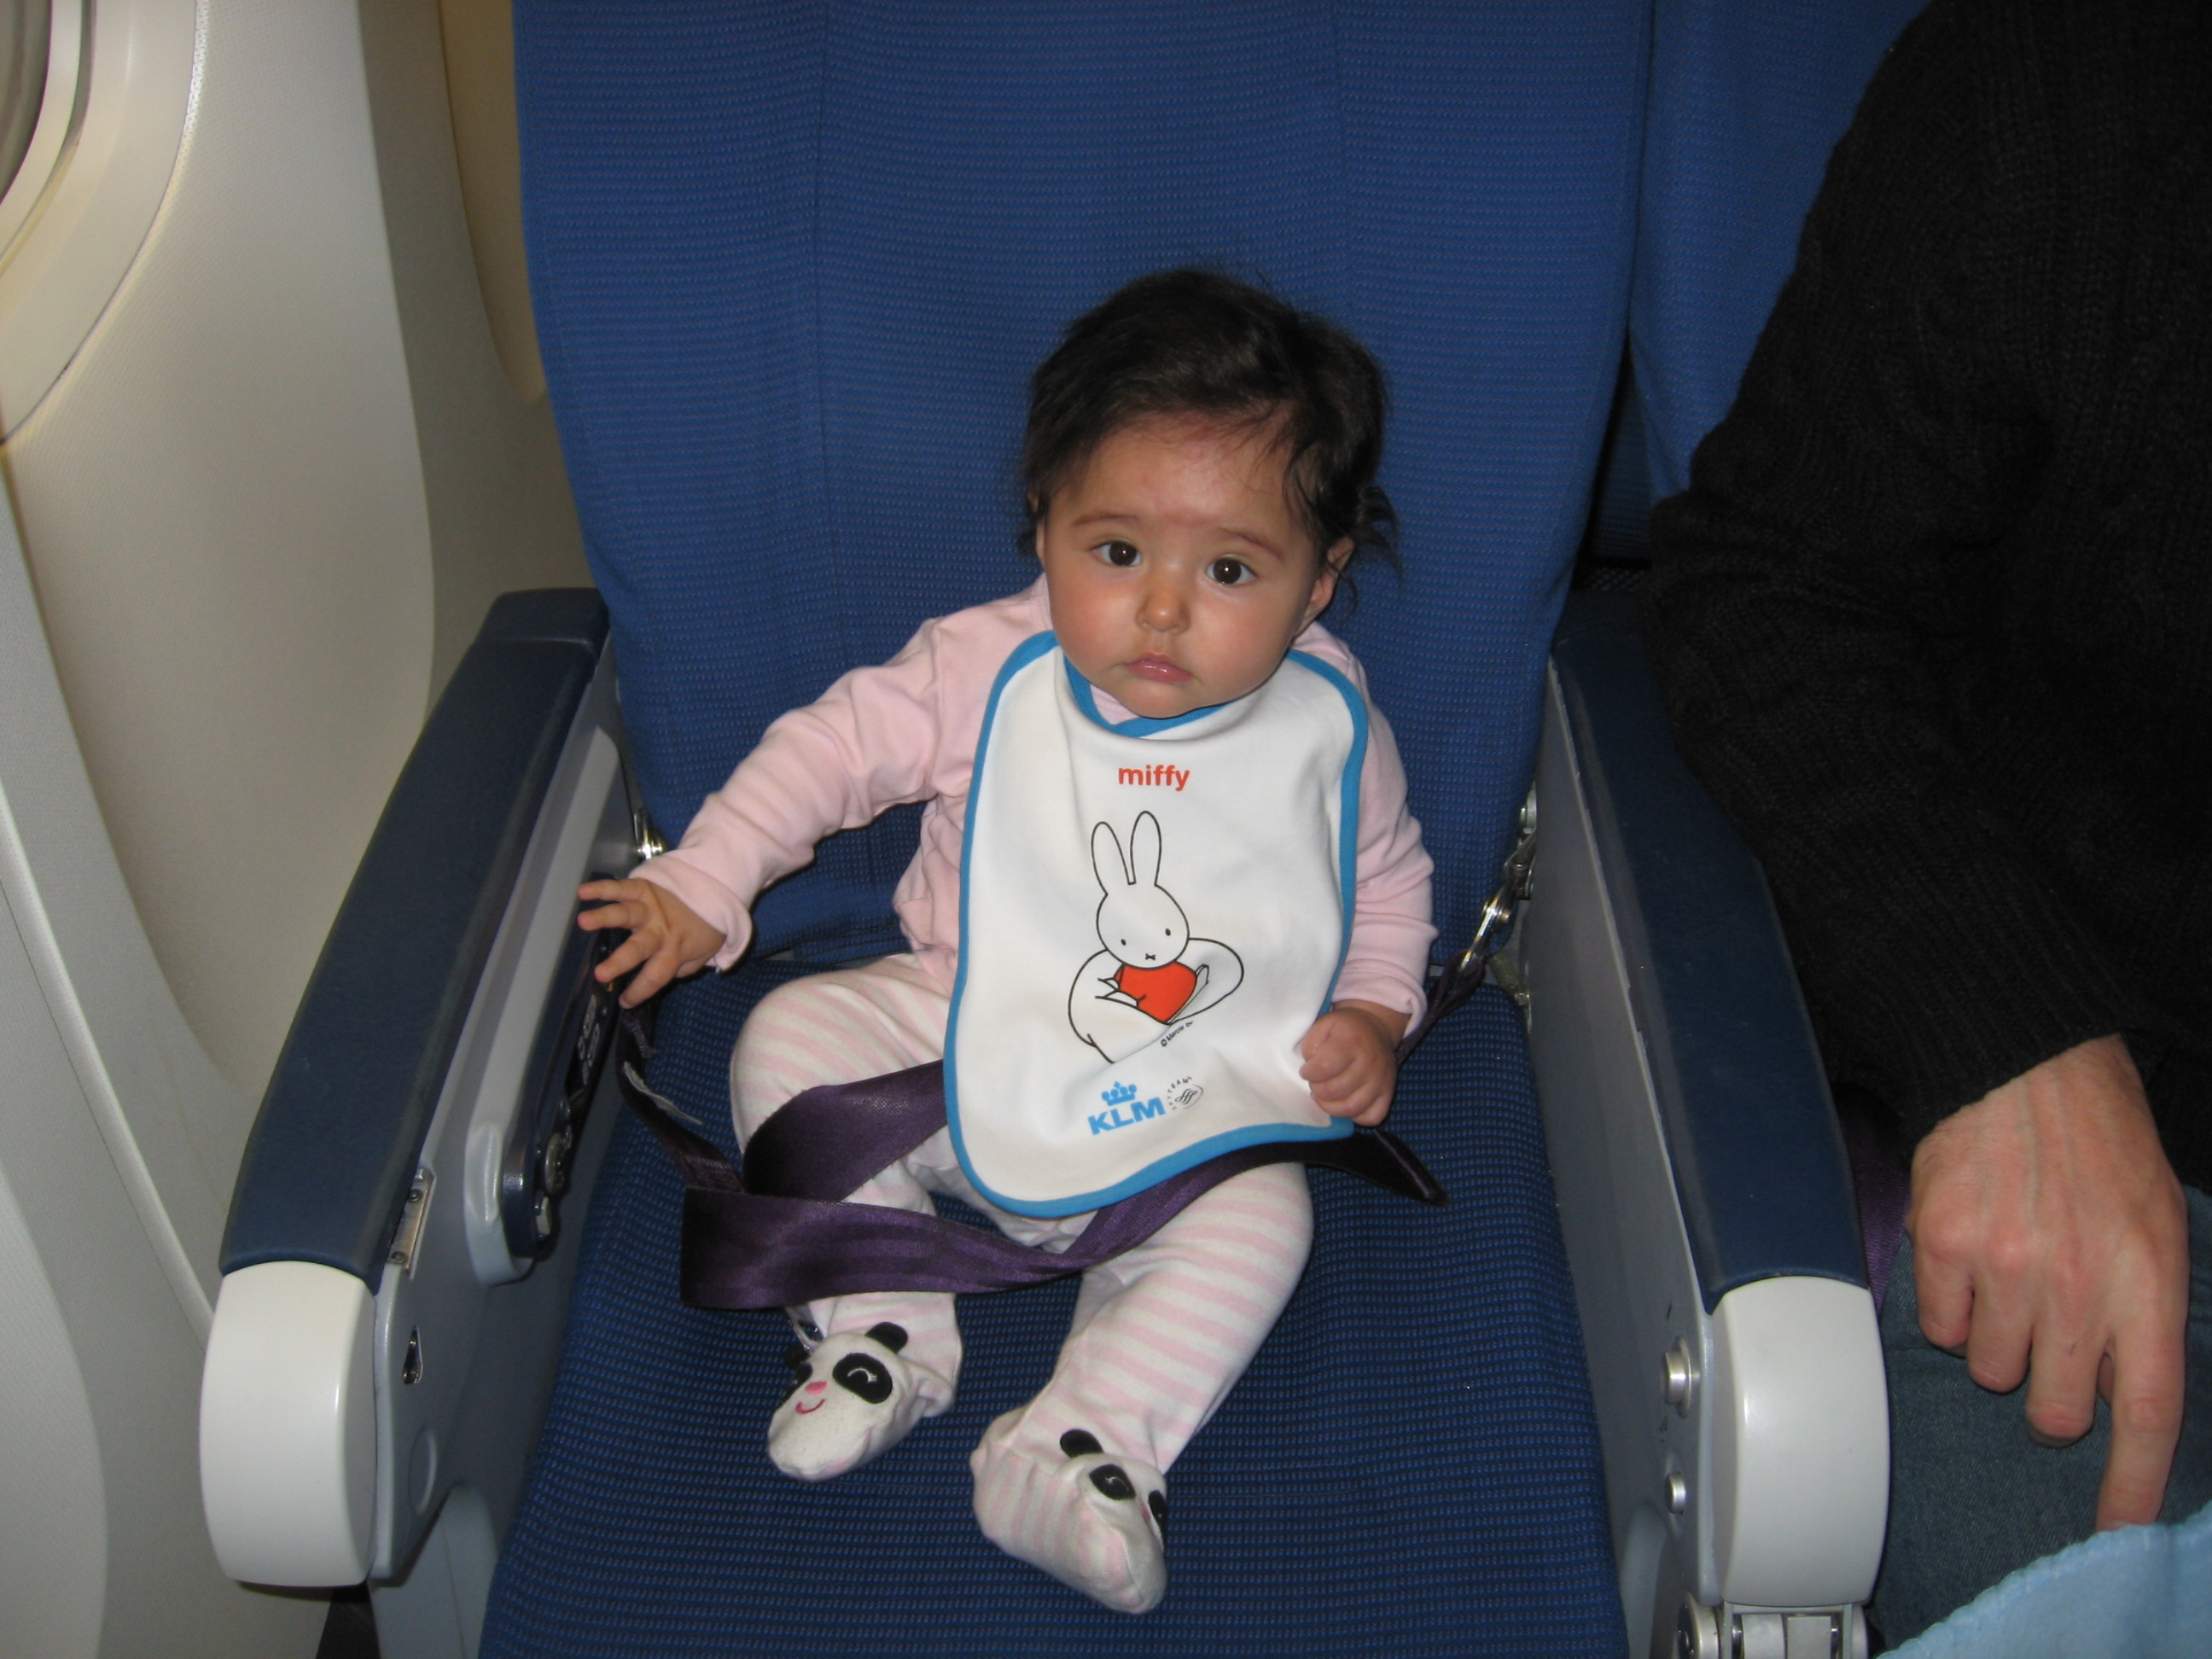 Baby bed airplane - Baby On Airplane